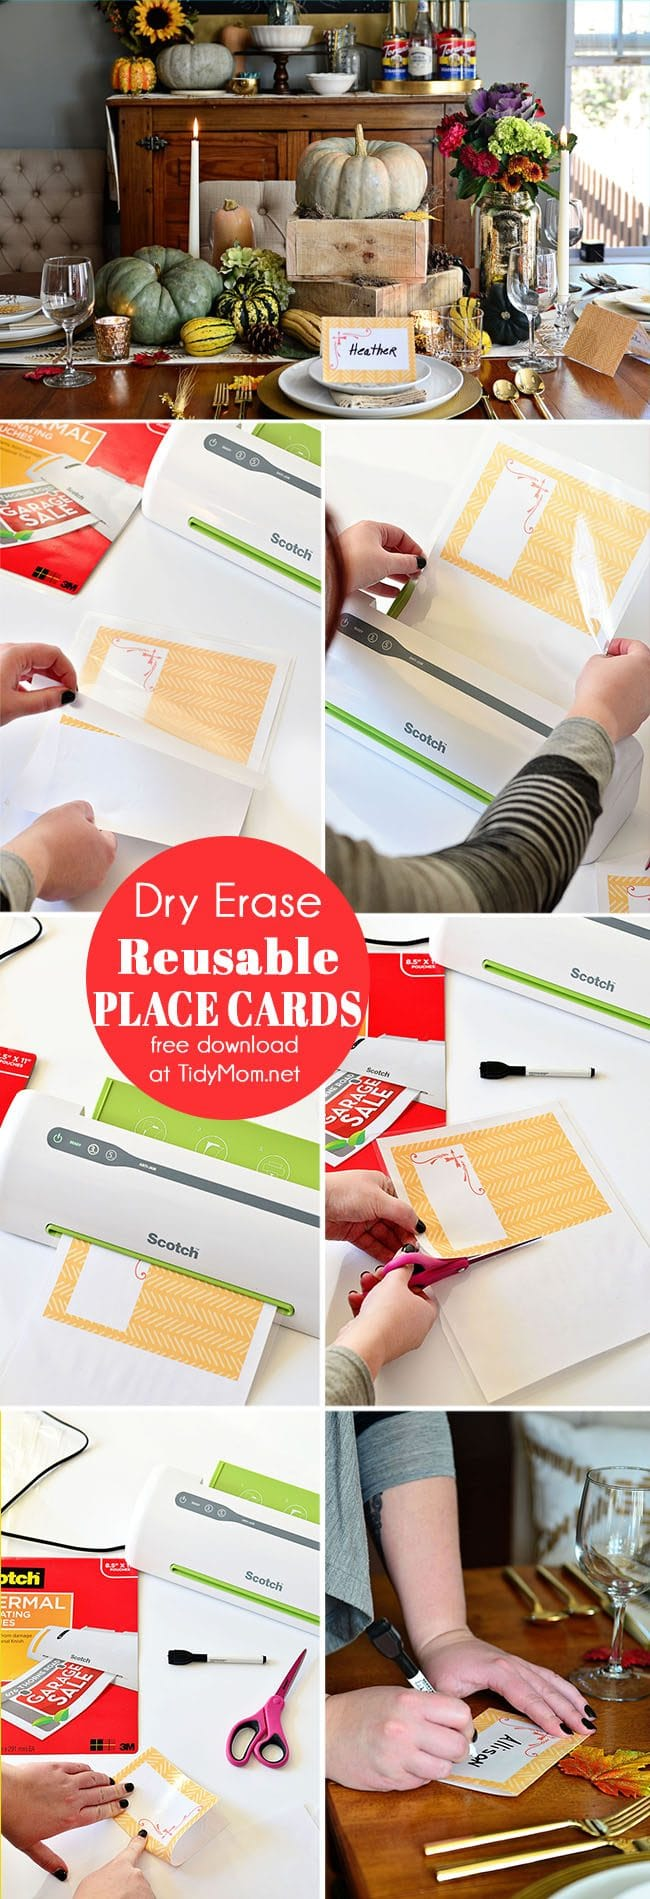 DIY Laminated Place Cards . Free printable at TidyMom.net Perfect for Thanksgiving Christmas or any time of year. Use a dry erase marker and you can use them over and over again!